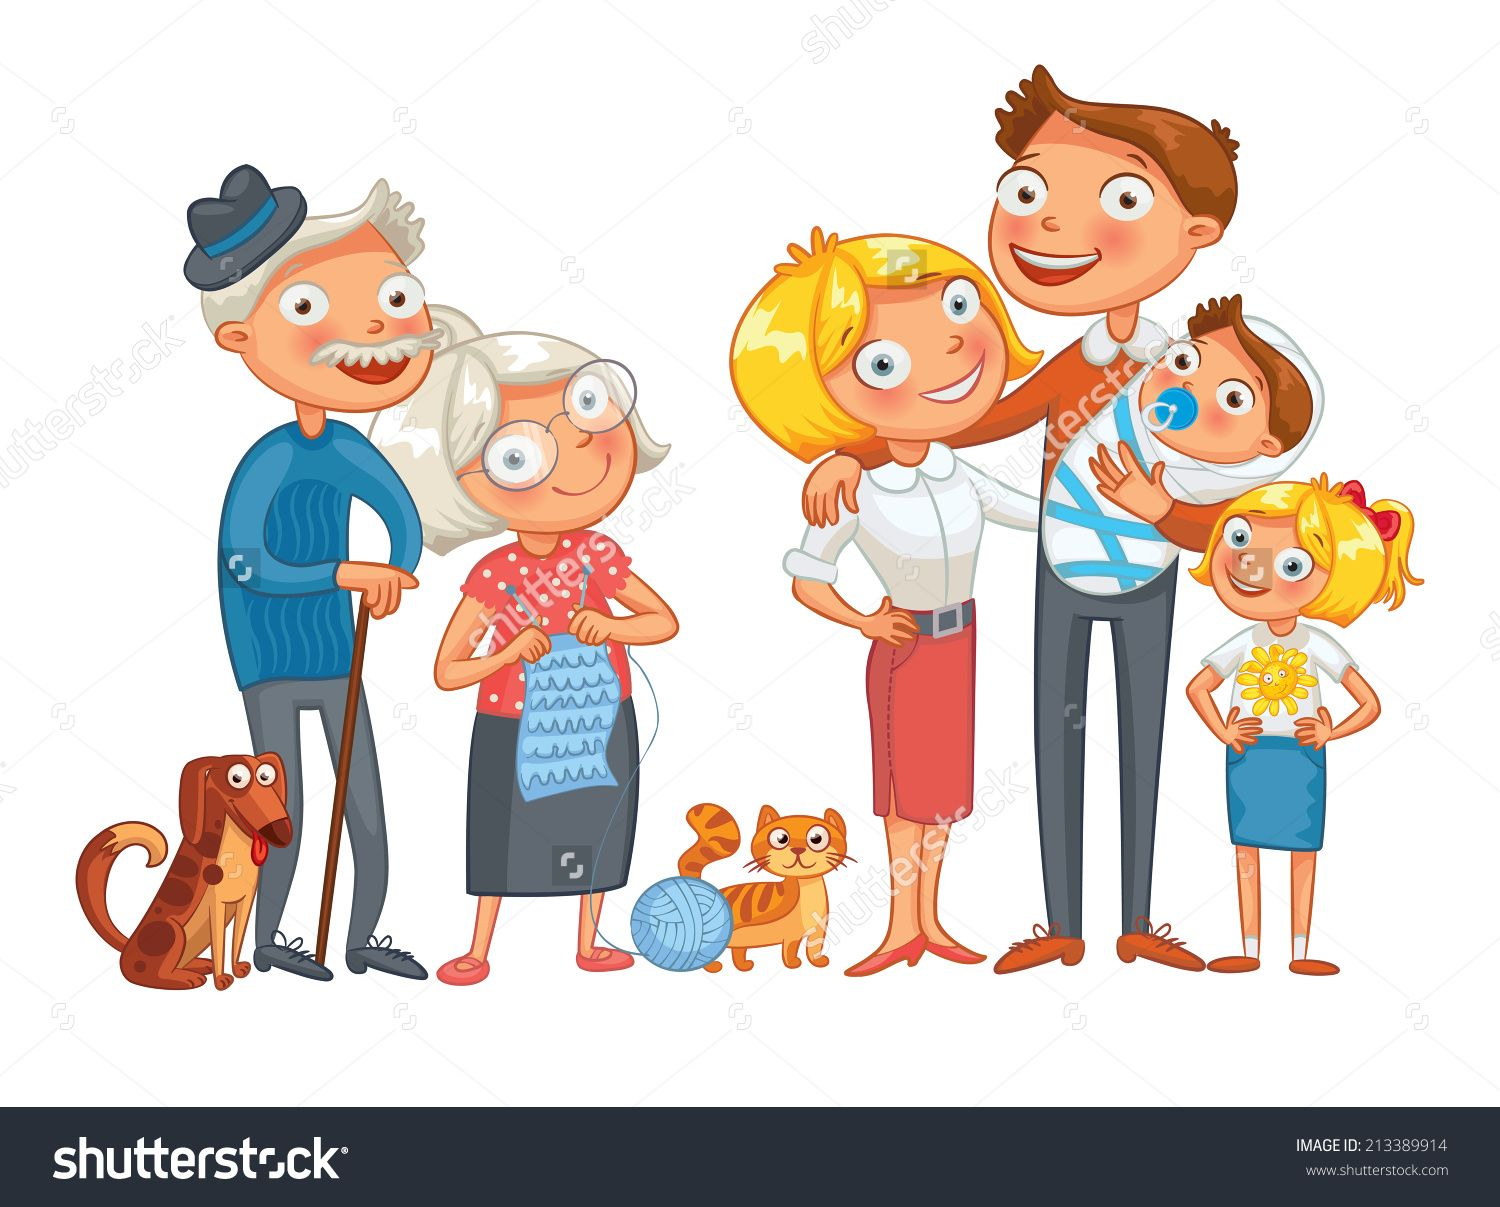 Cartoon dog stock photos images amp pictures shutterstock - Big Happy Family Consisting Of A Father Mother Daughter Son Grandparents And